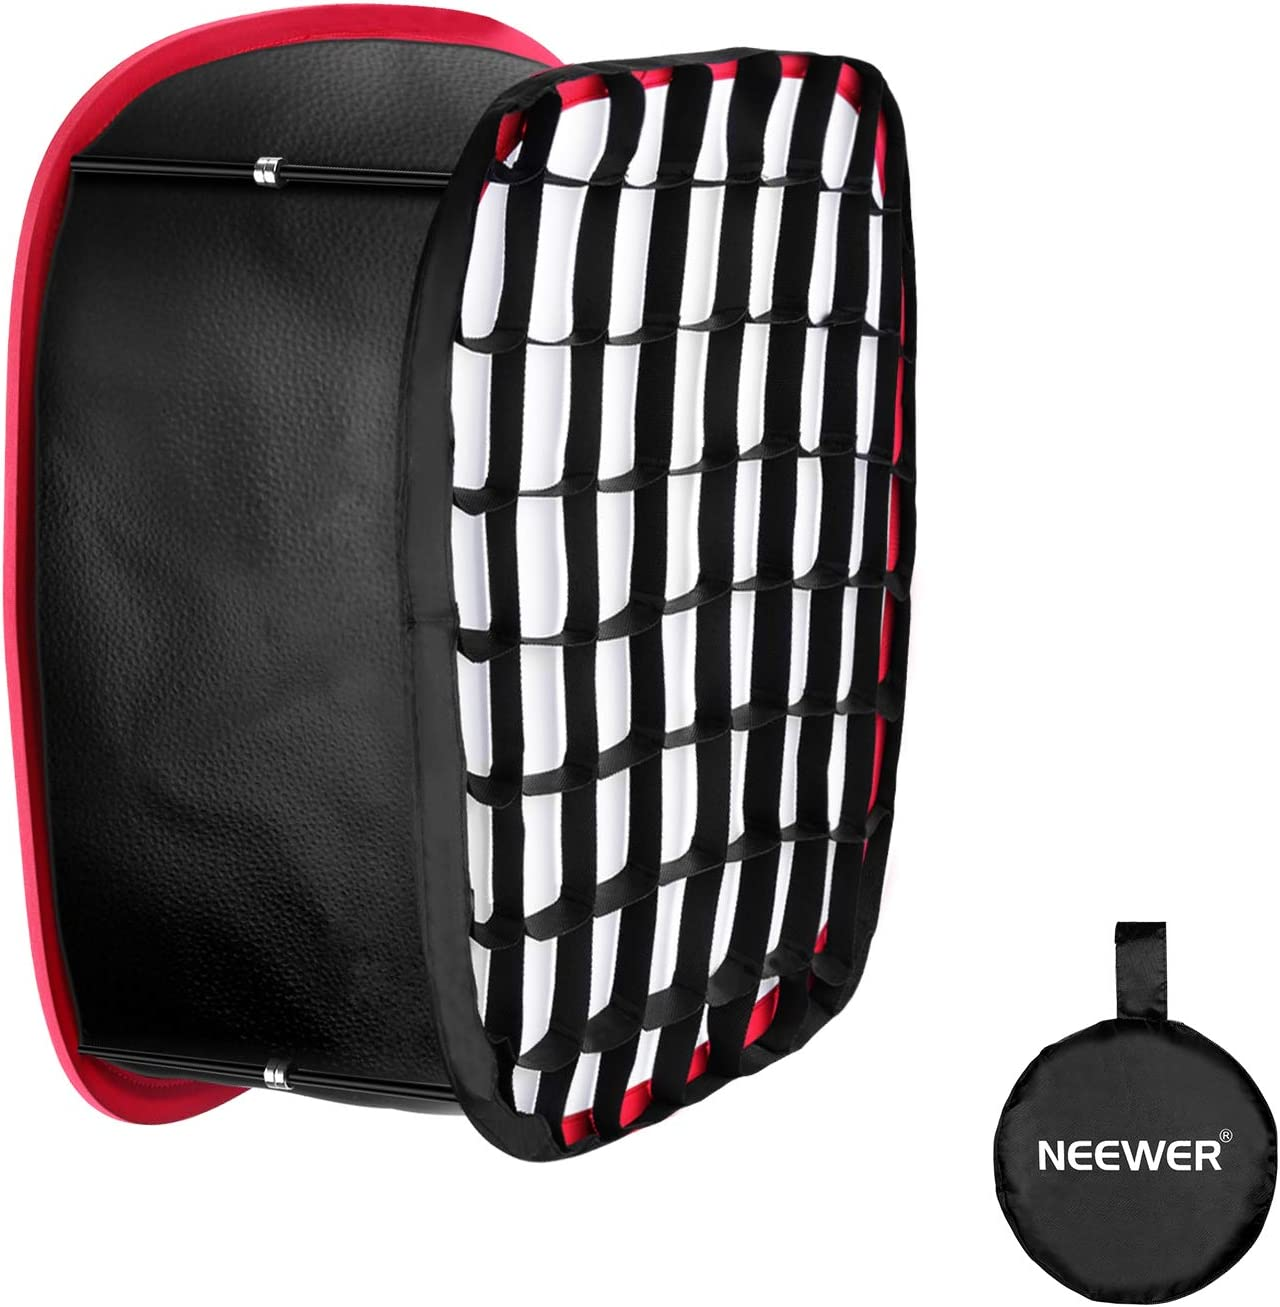 Neewer Collapsible Softbox with Strap Attachment, Grid and Carrying Bag Compatible with Neewer 480/660/530 LED Light Panels, 9.25x8.27 inches Opening (Black+Red)